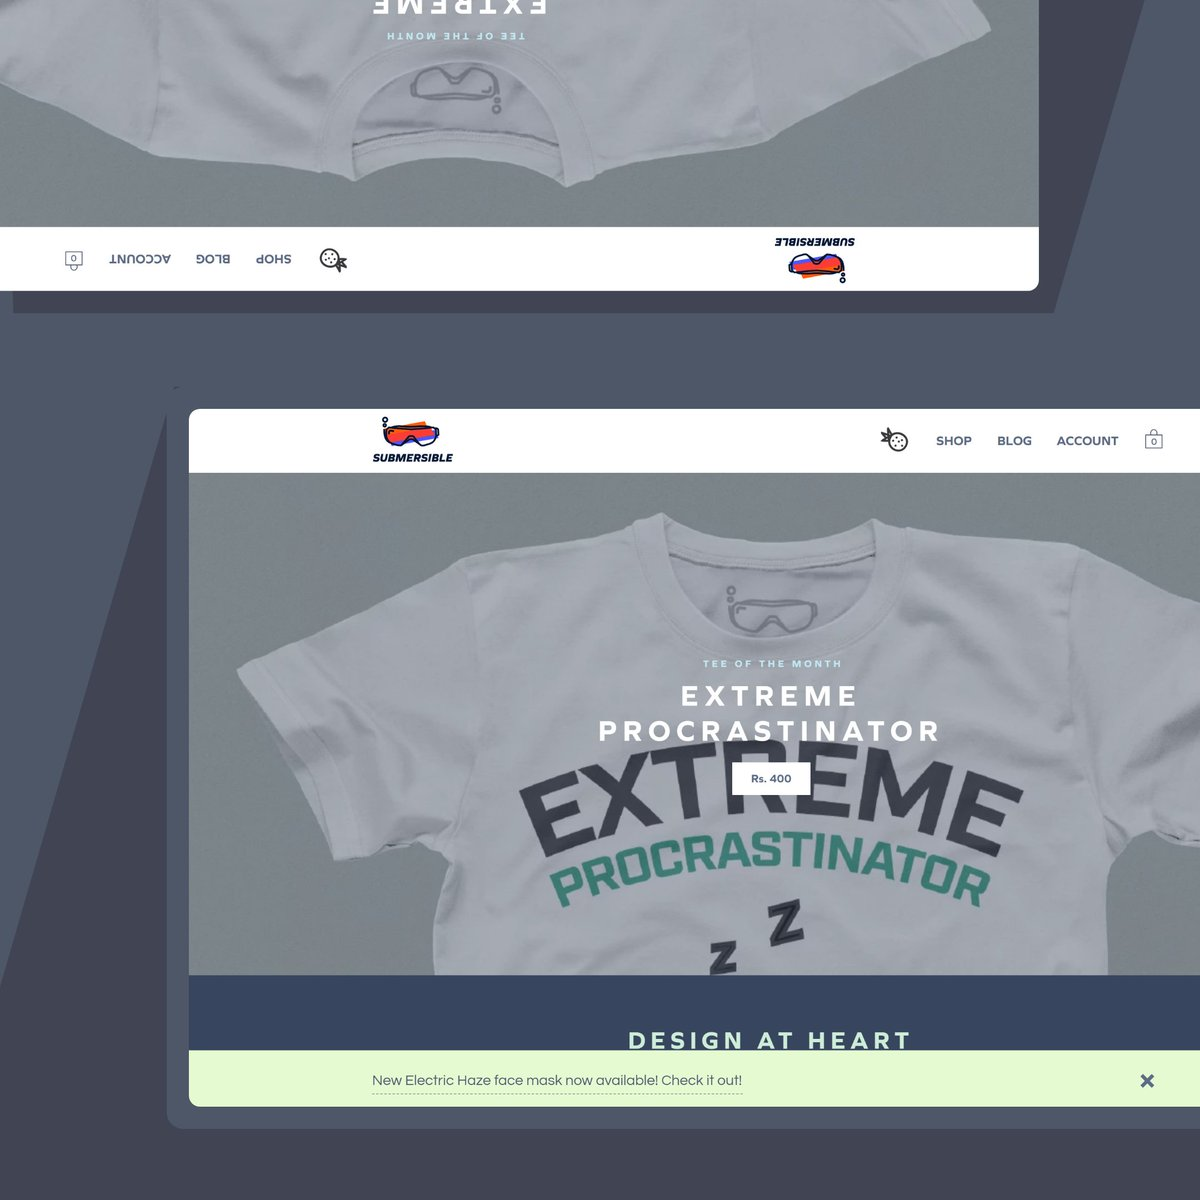 New tee of the month is up on the website! Get an amazing deal on a special August entry - The Extreme Procrastinator! - #submersible #human #rockandroll #popartist #designprocess #designproject #photography #hinditypography #tshirtonline #tshirtslovers #tshirtcollectionpic.twitter.com/wXgLcYTZlp